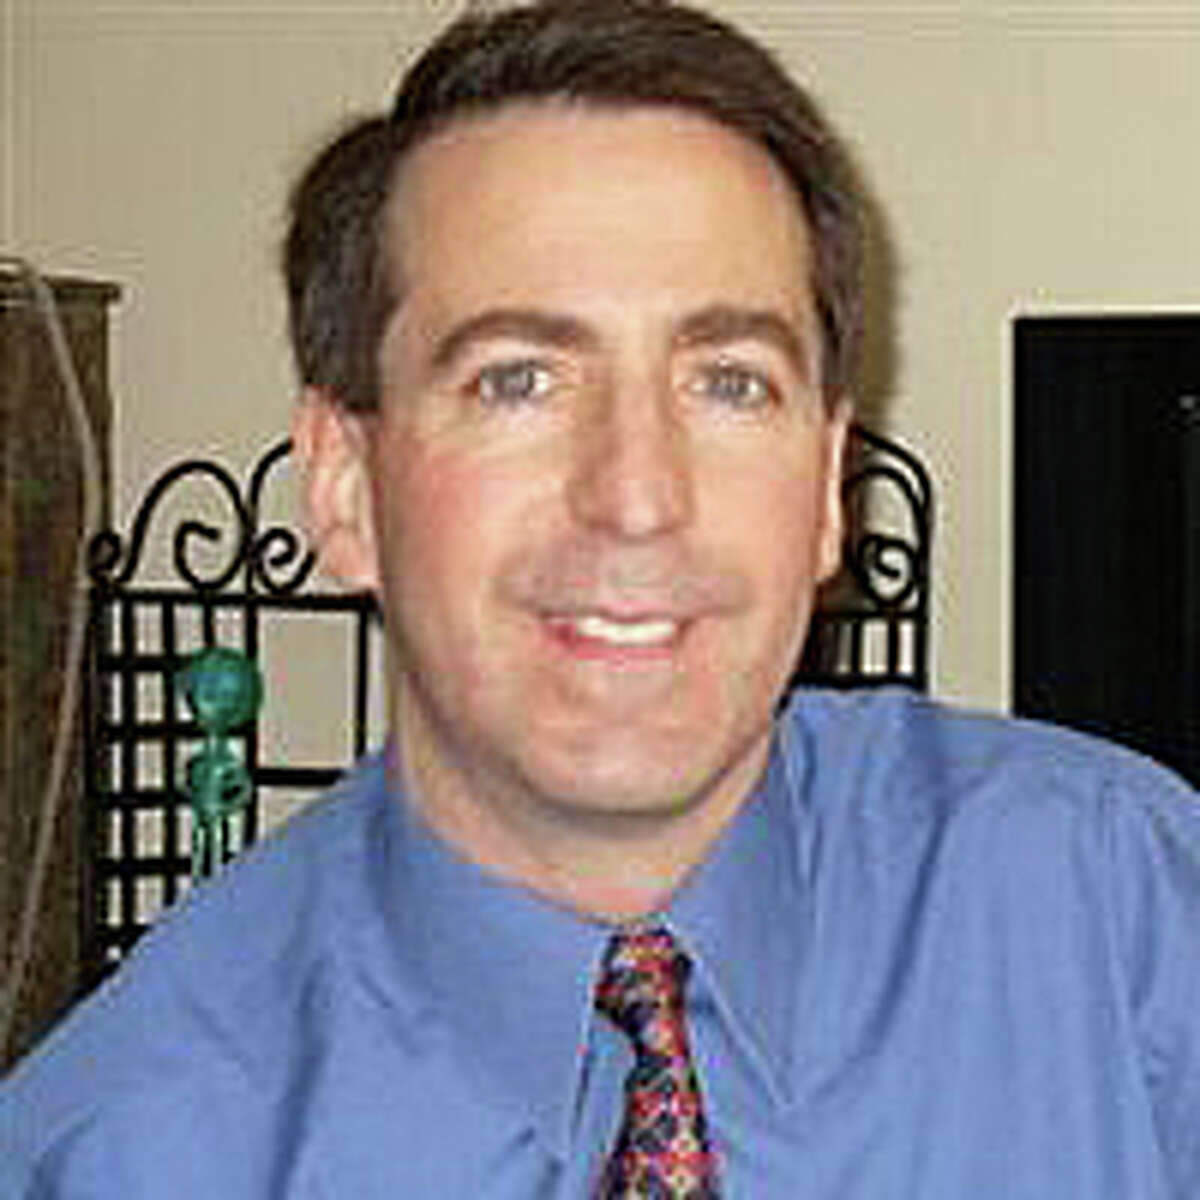 LinkedIn profile photo of Peter Lanza, father of 20-year-old Adam Lanza.